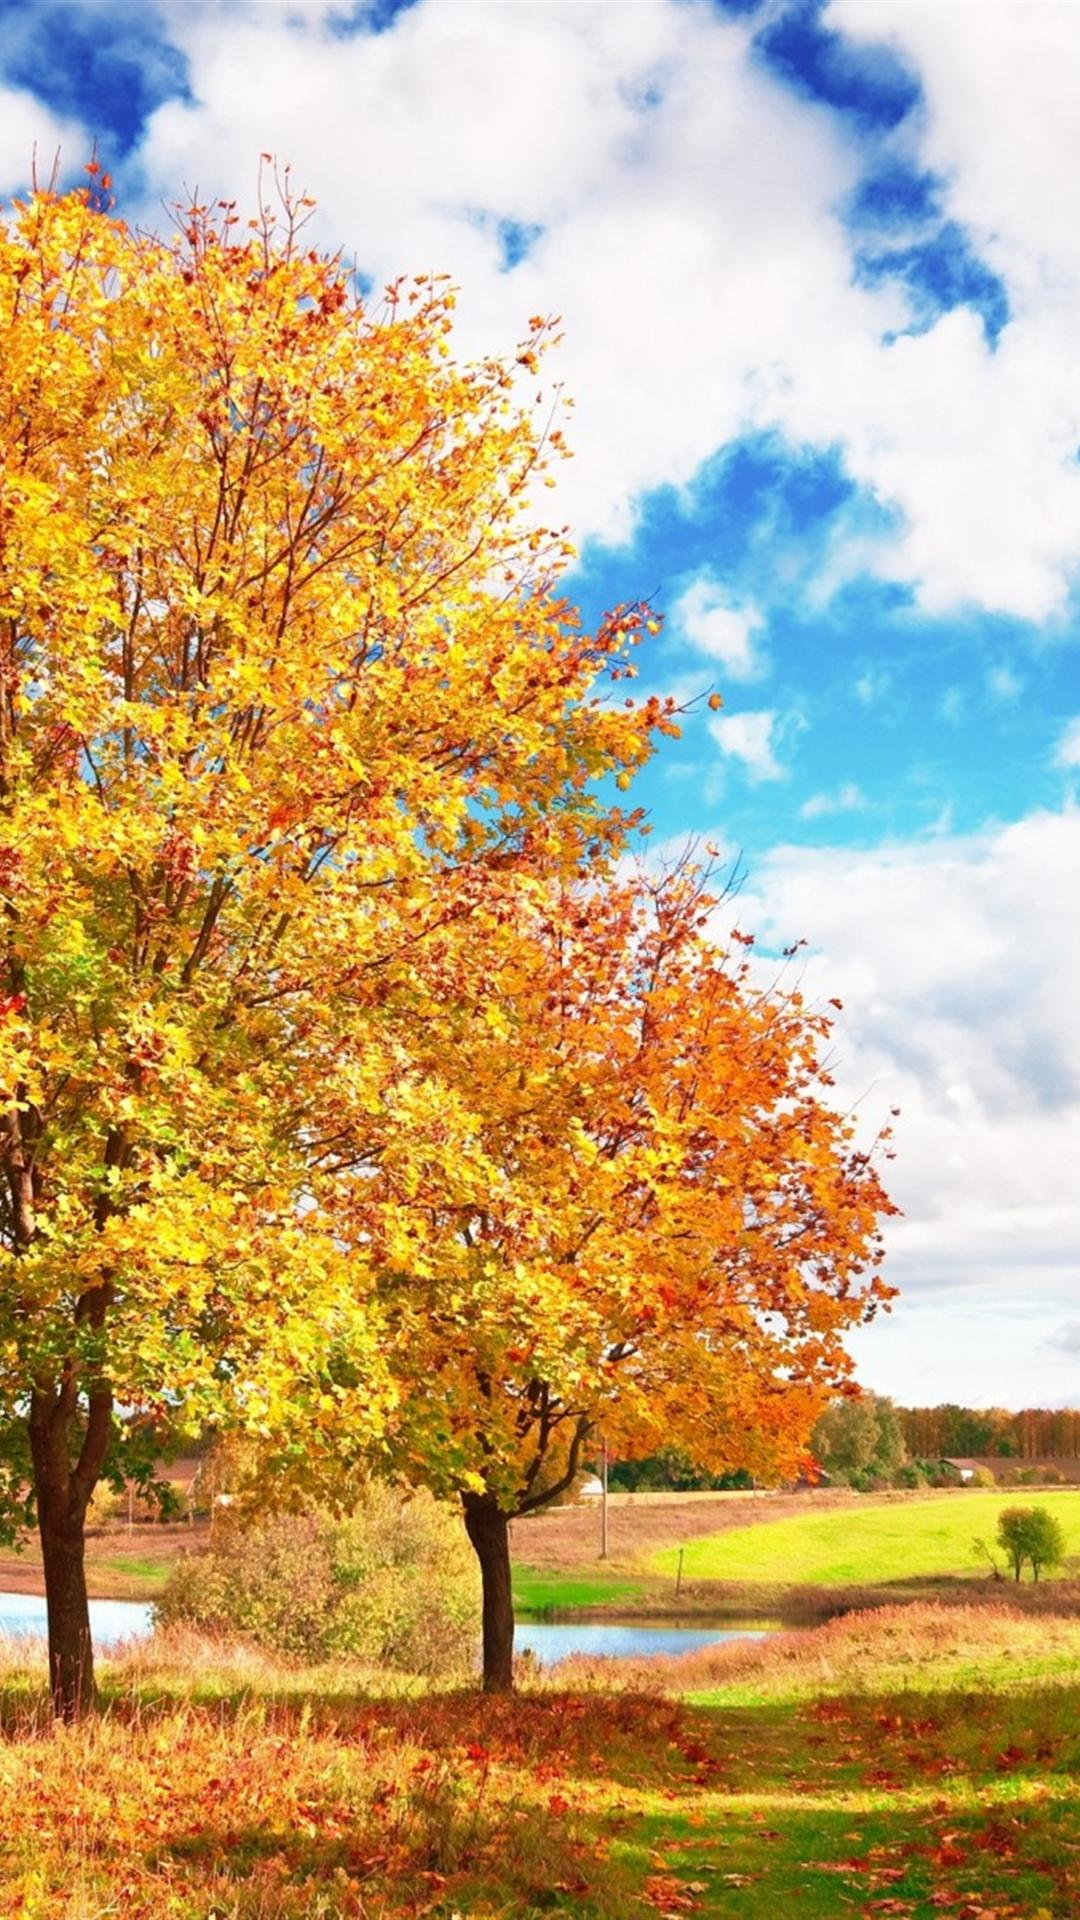 Autumn Iphone 6 Plus Wallpapers Top Free Autumn Iphone 6